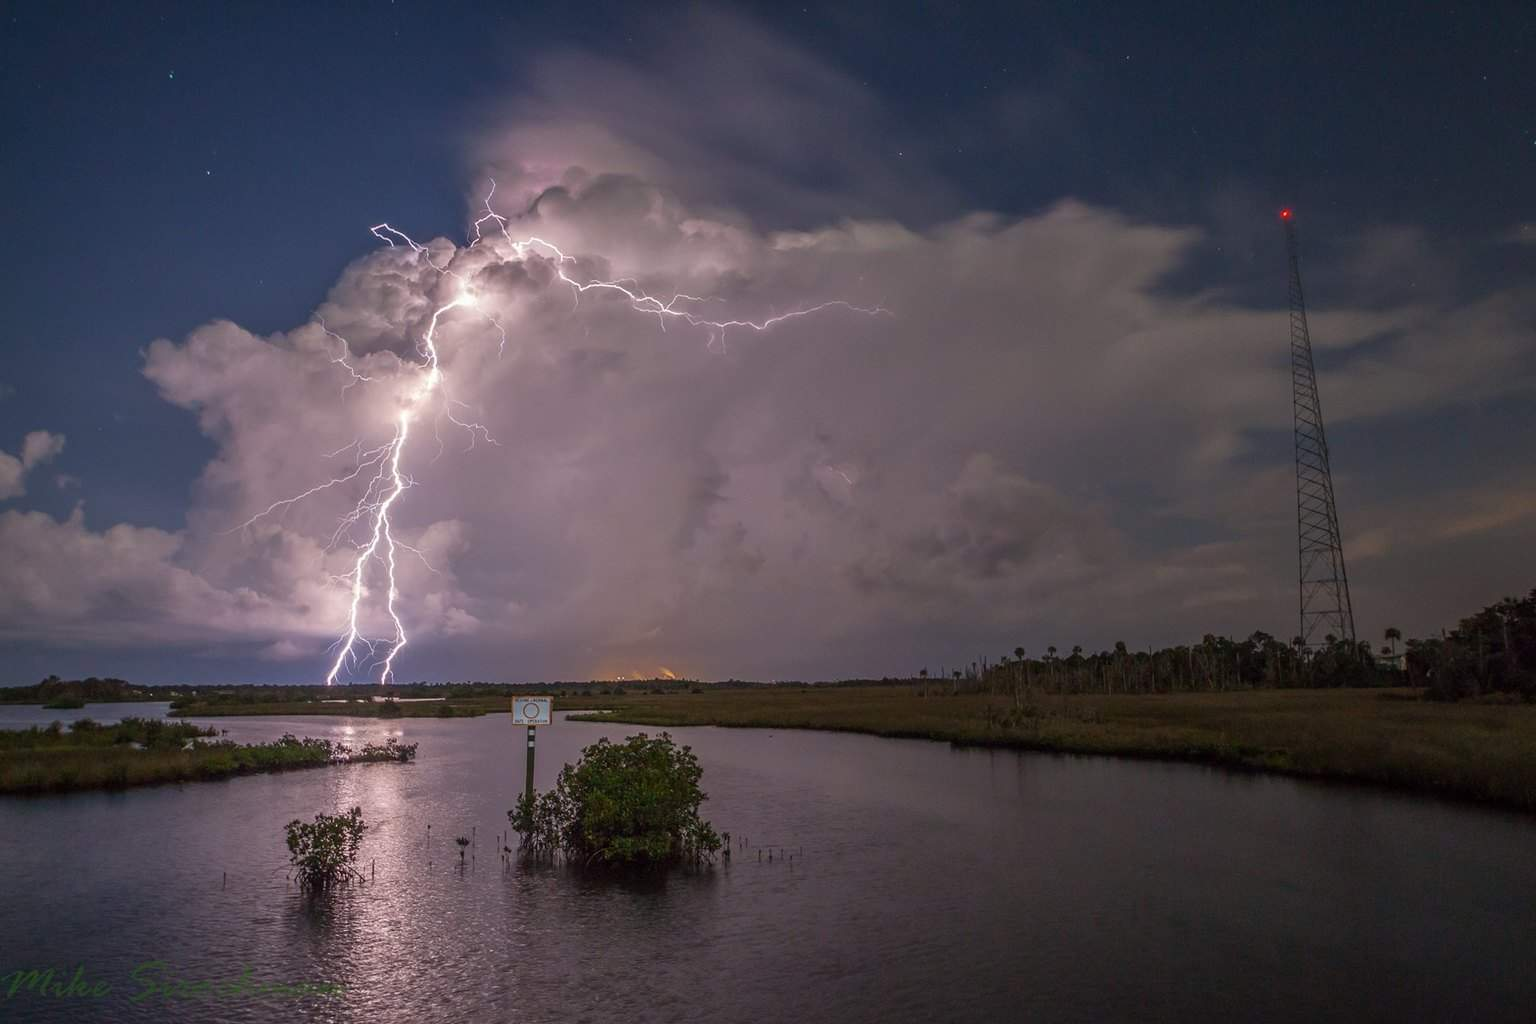 Last night's storm over Crystal River with a full moon behind me. — at Ozello Trail.